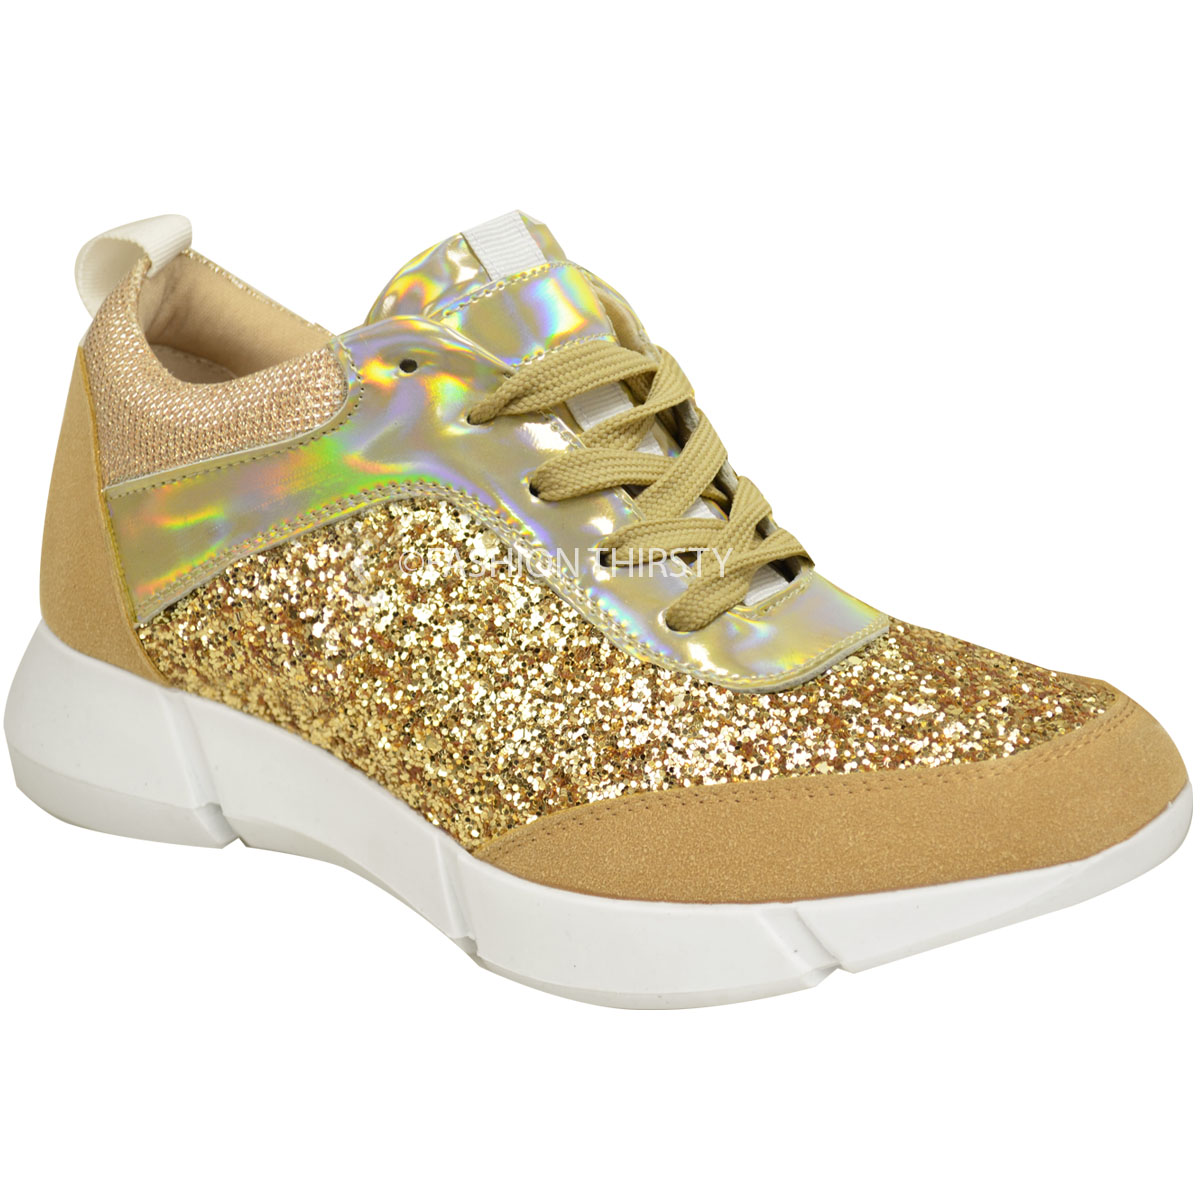 Fashion Thirsty Fashion Thirsty Womens Glitter Sneakers Trainers Fashion Casual Gym Sport Fitness Size Gold Faux Suede Glitter Hologram Factory Price